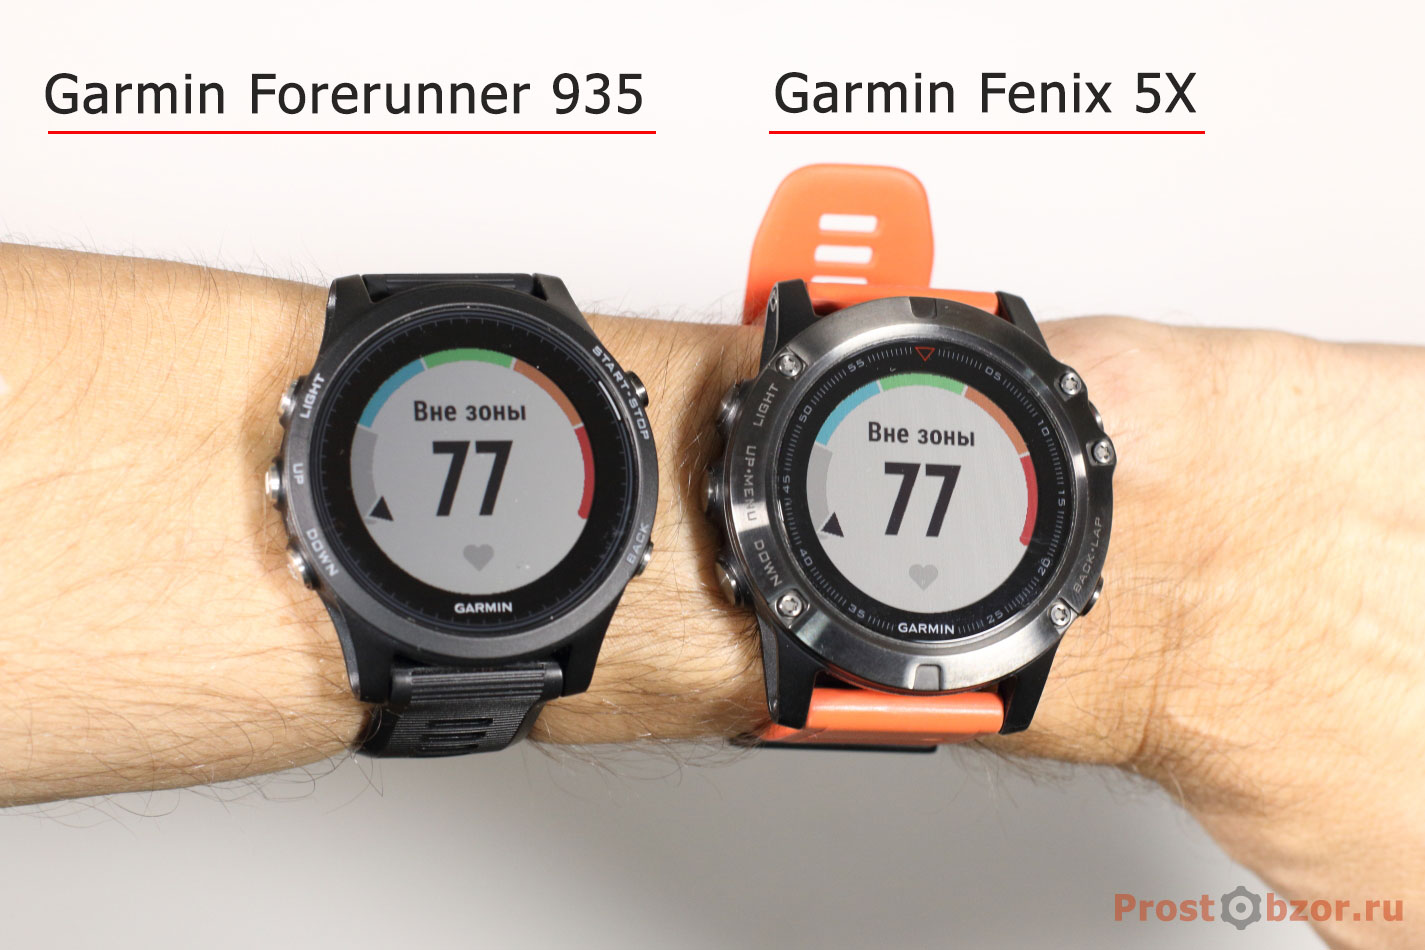 garmin forerunner 935. Black Bedroom Furniture Sets. Home Design Ideas